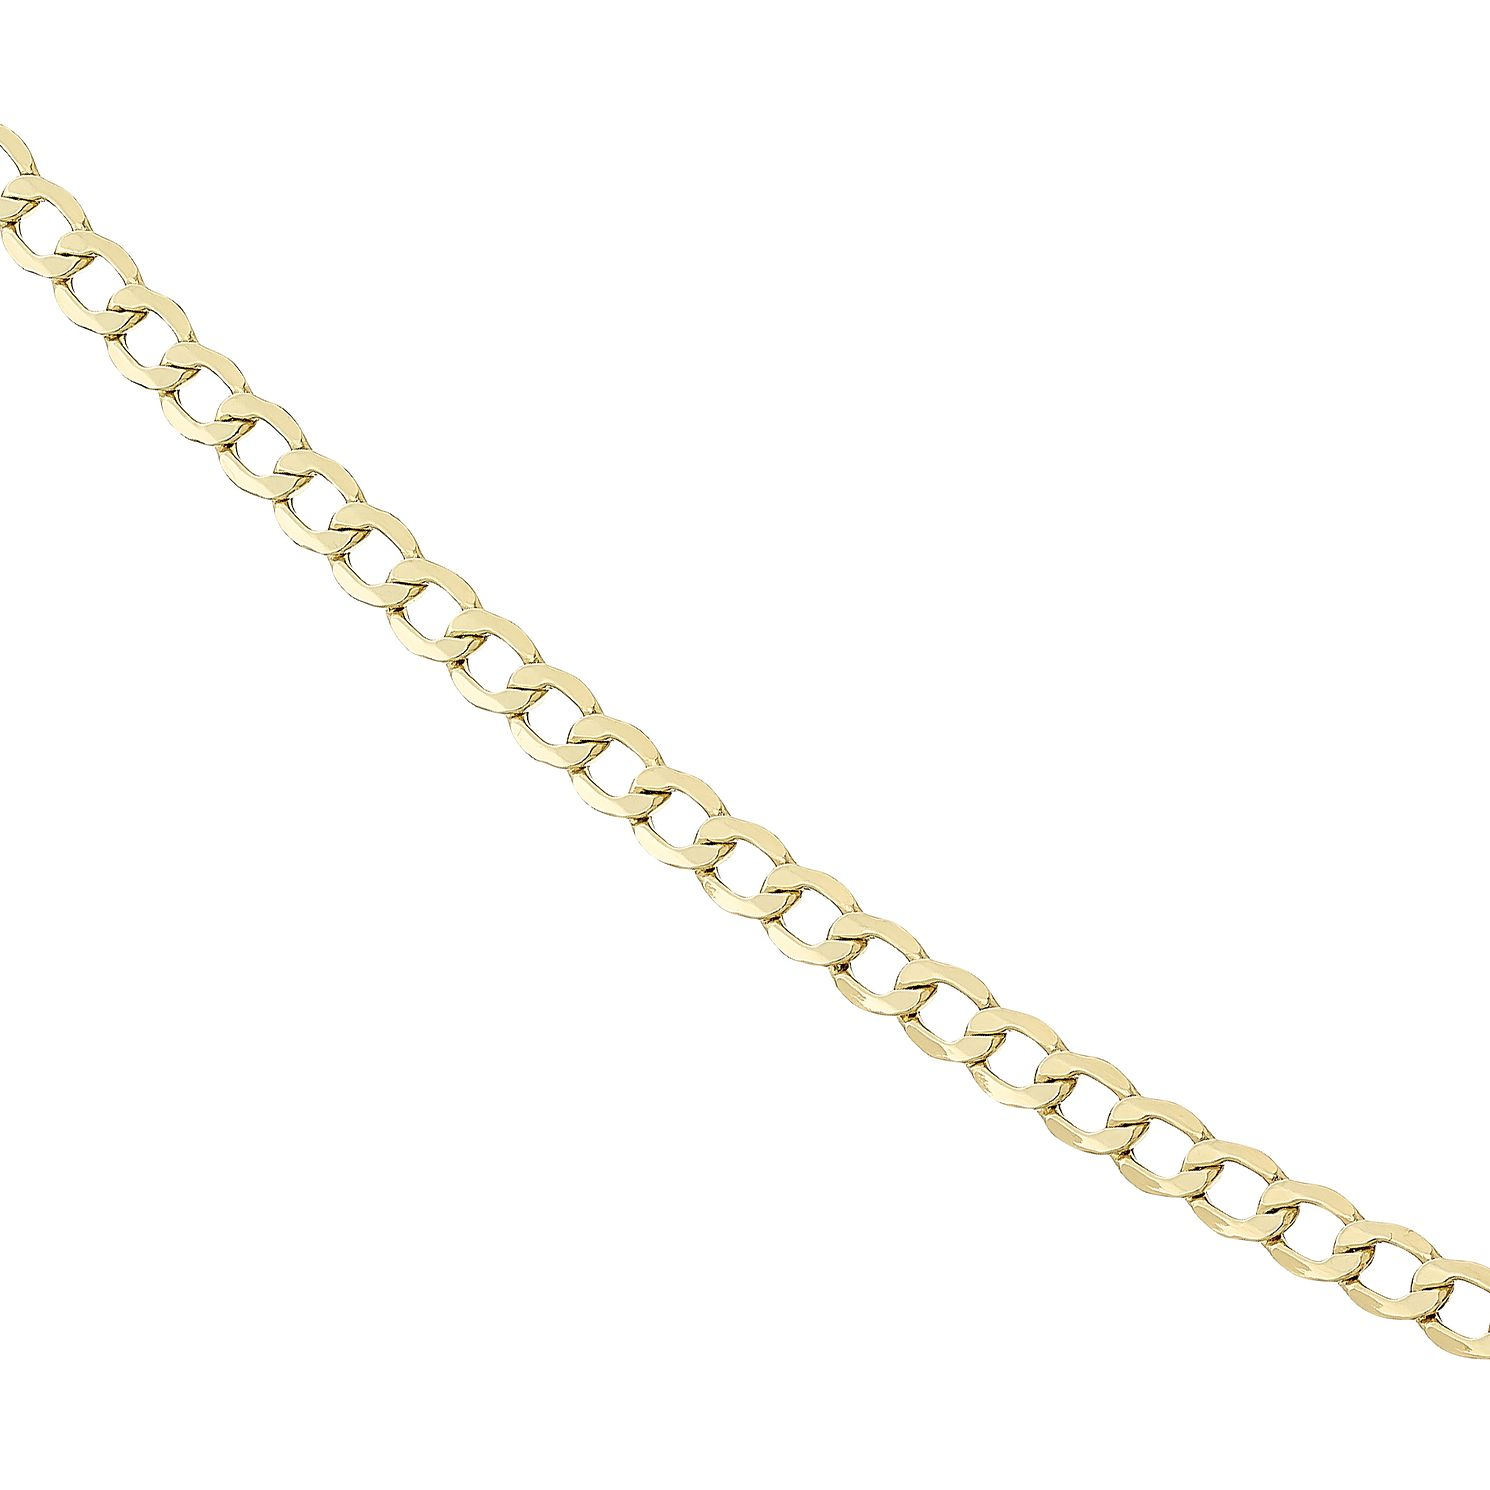 l samuel webstore men h category jewellery him curb number necklaces recipient gold chain s for product baby chains